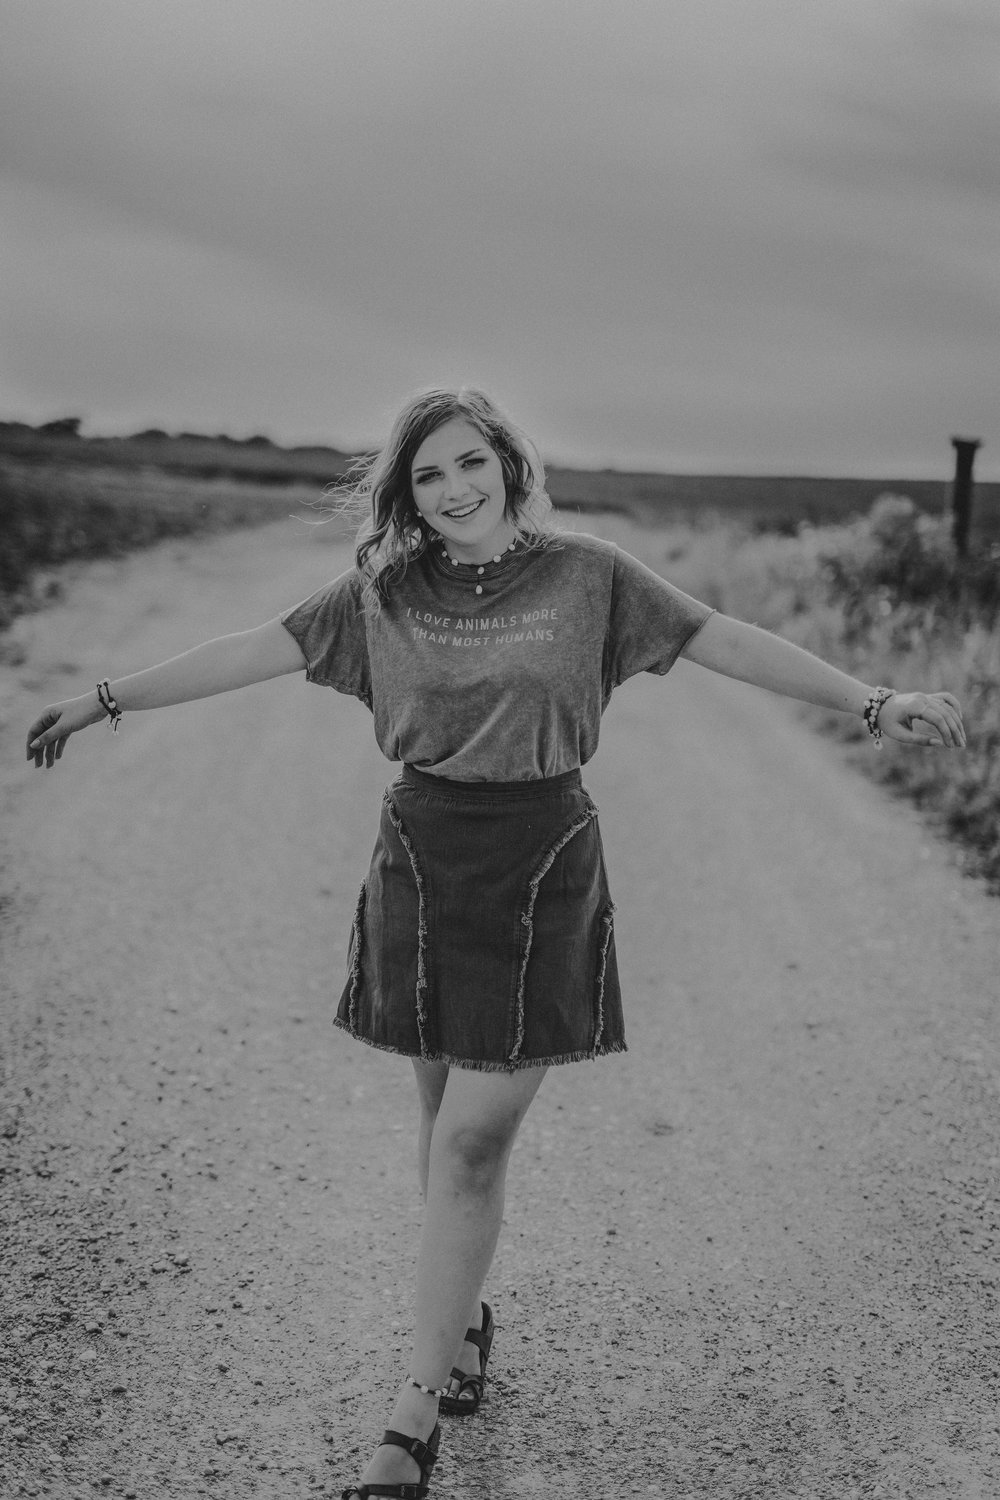 billie-shaye style photography - www.billieshayestyle.com - class of 2019 - senior portrait experience - country farm creek crop land - nashville tennessee-3959-2.jpg